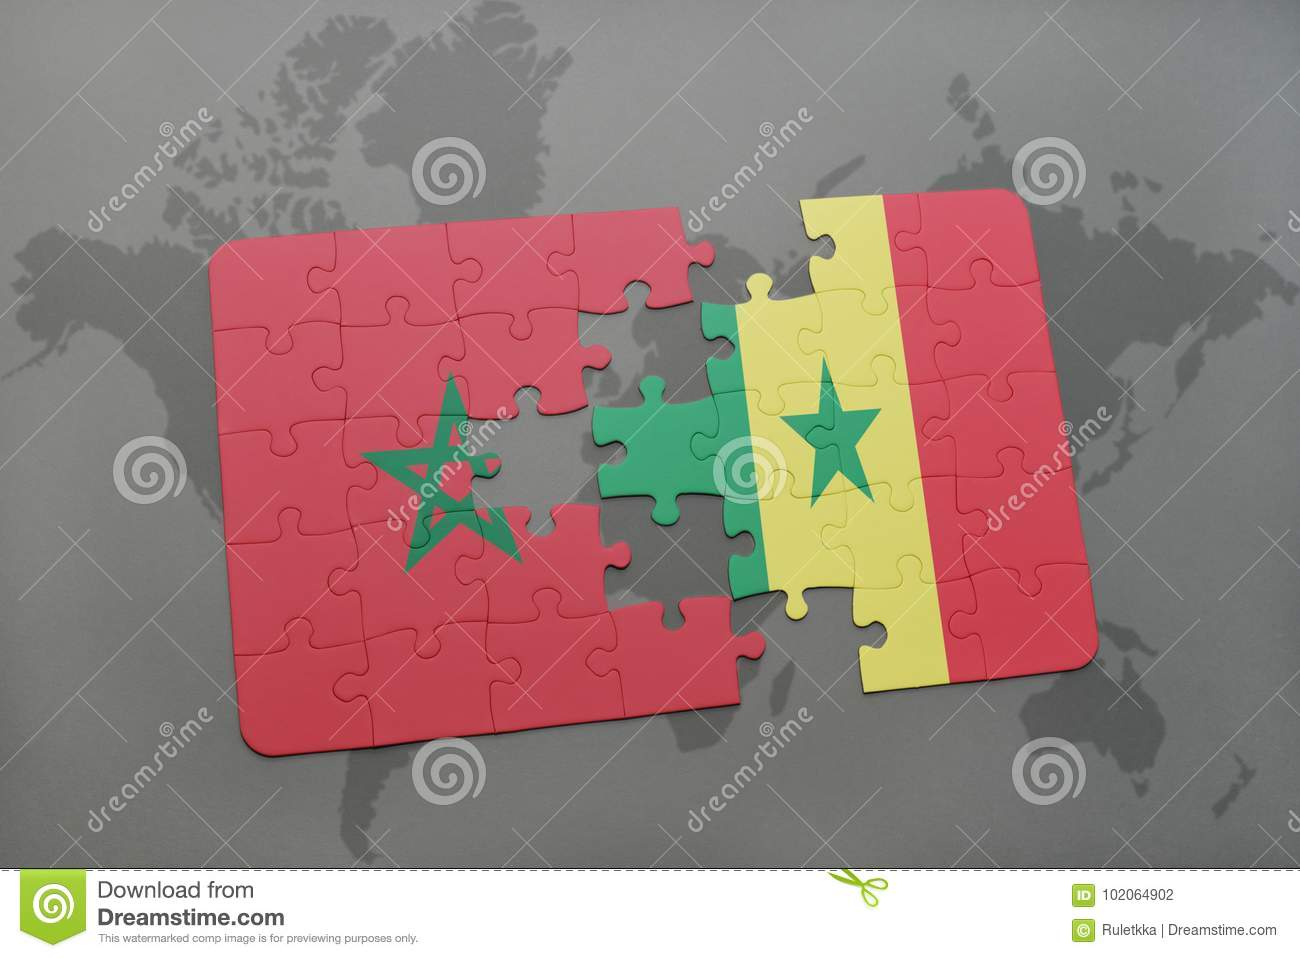 puzzle with the national flag of morocco and senegal on a world map